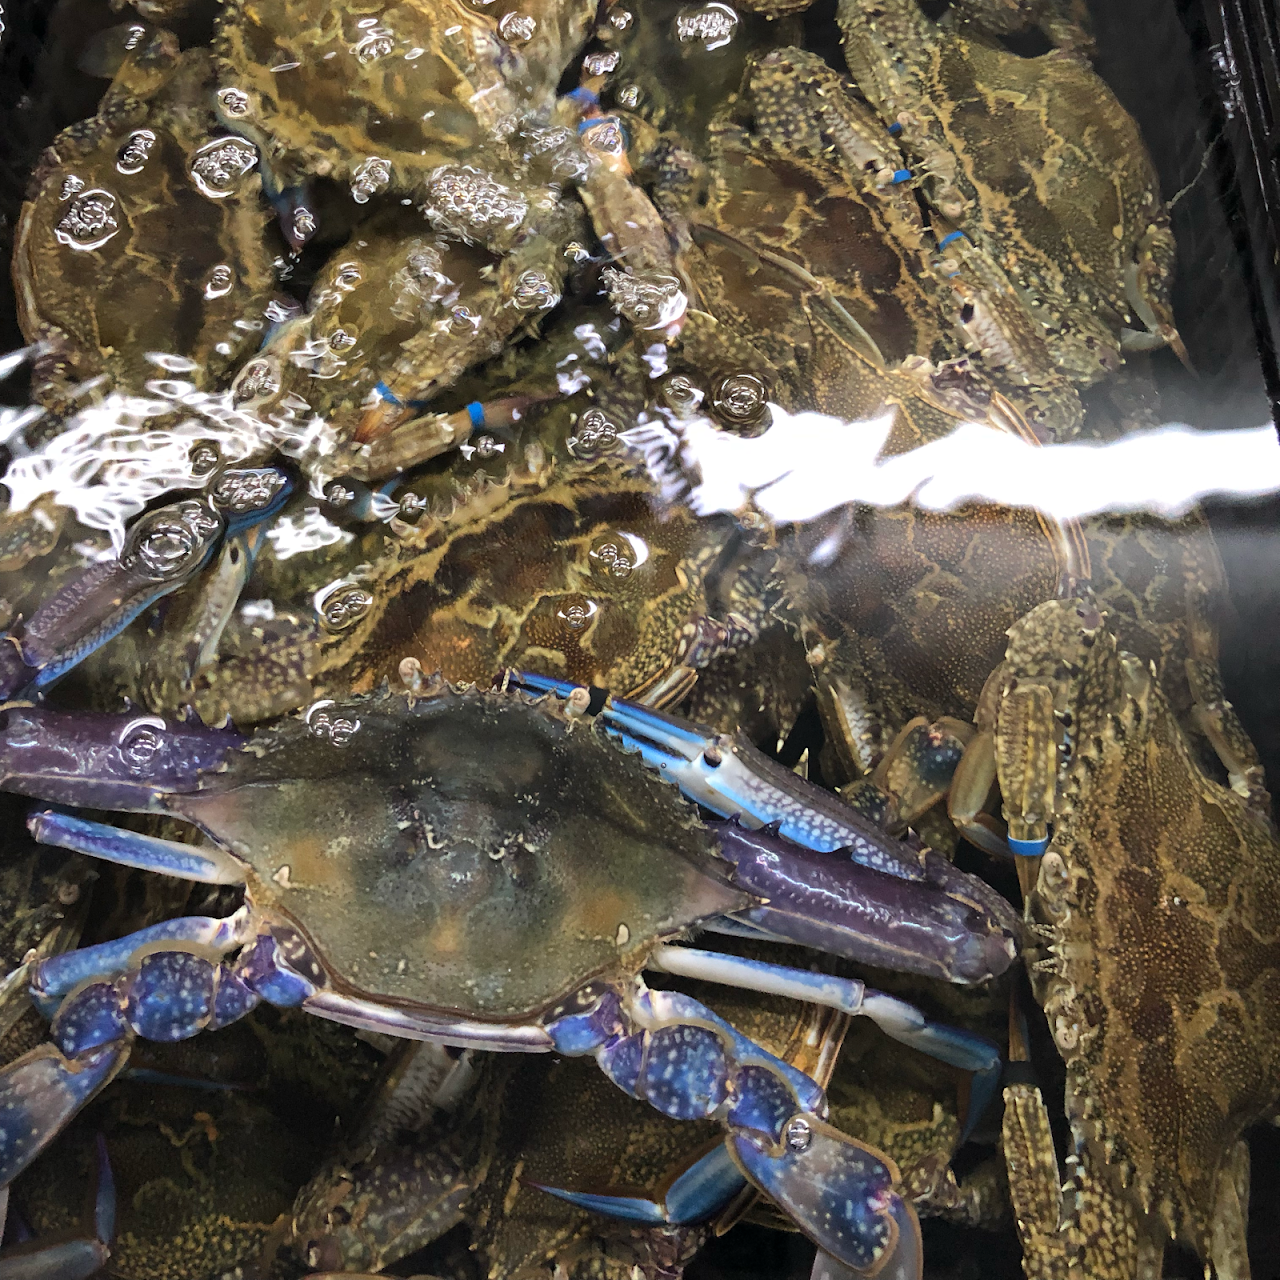 D&K Live Seafood - Seafood Wholesaler in Footscray